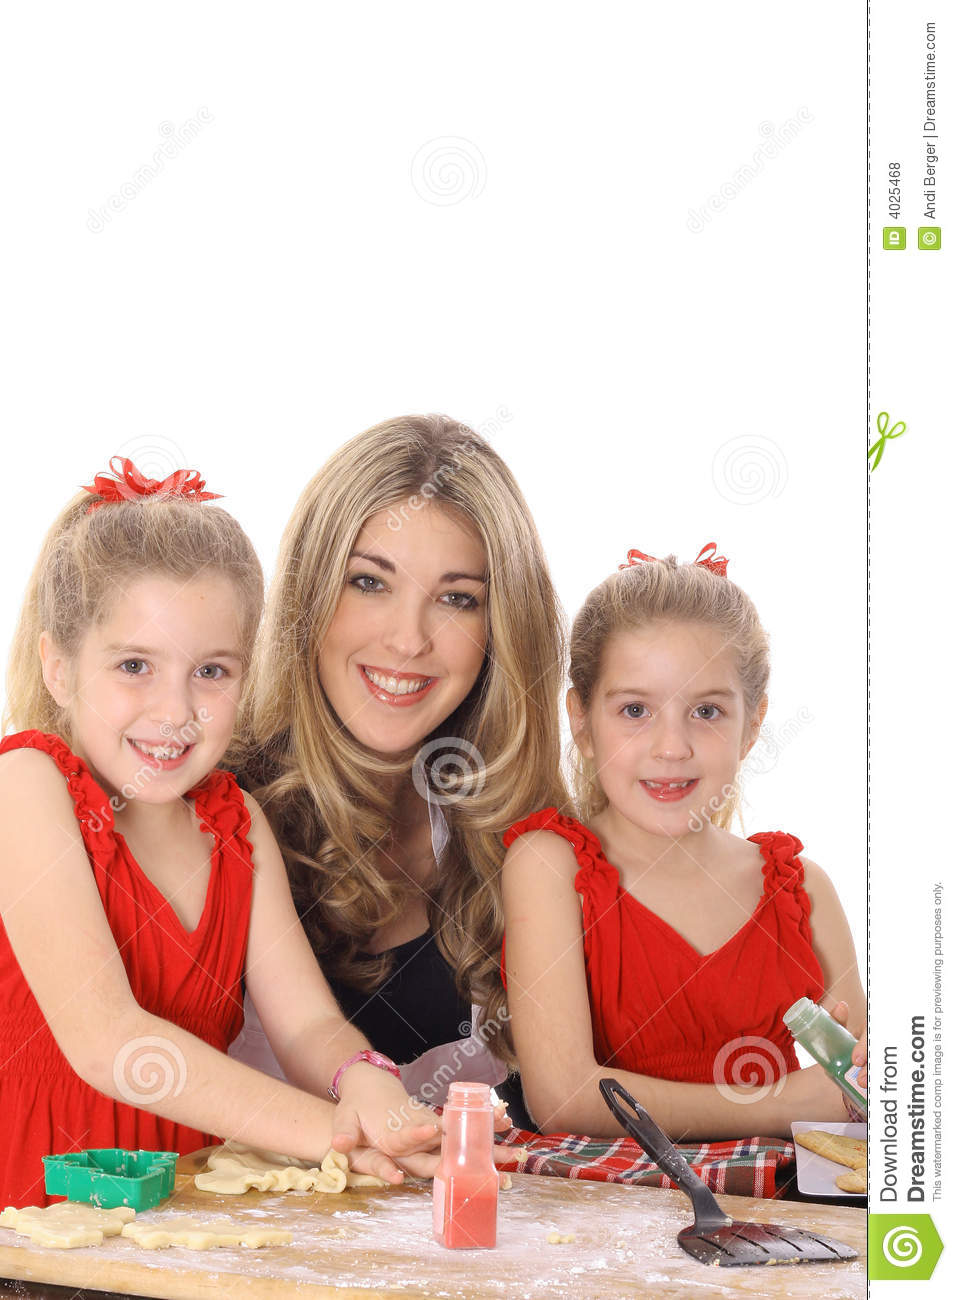 Happy mom with twin daughters decorating cookies